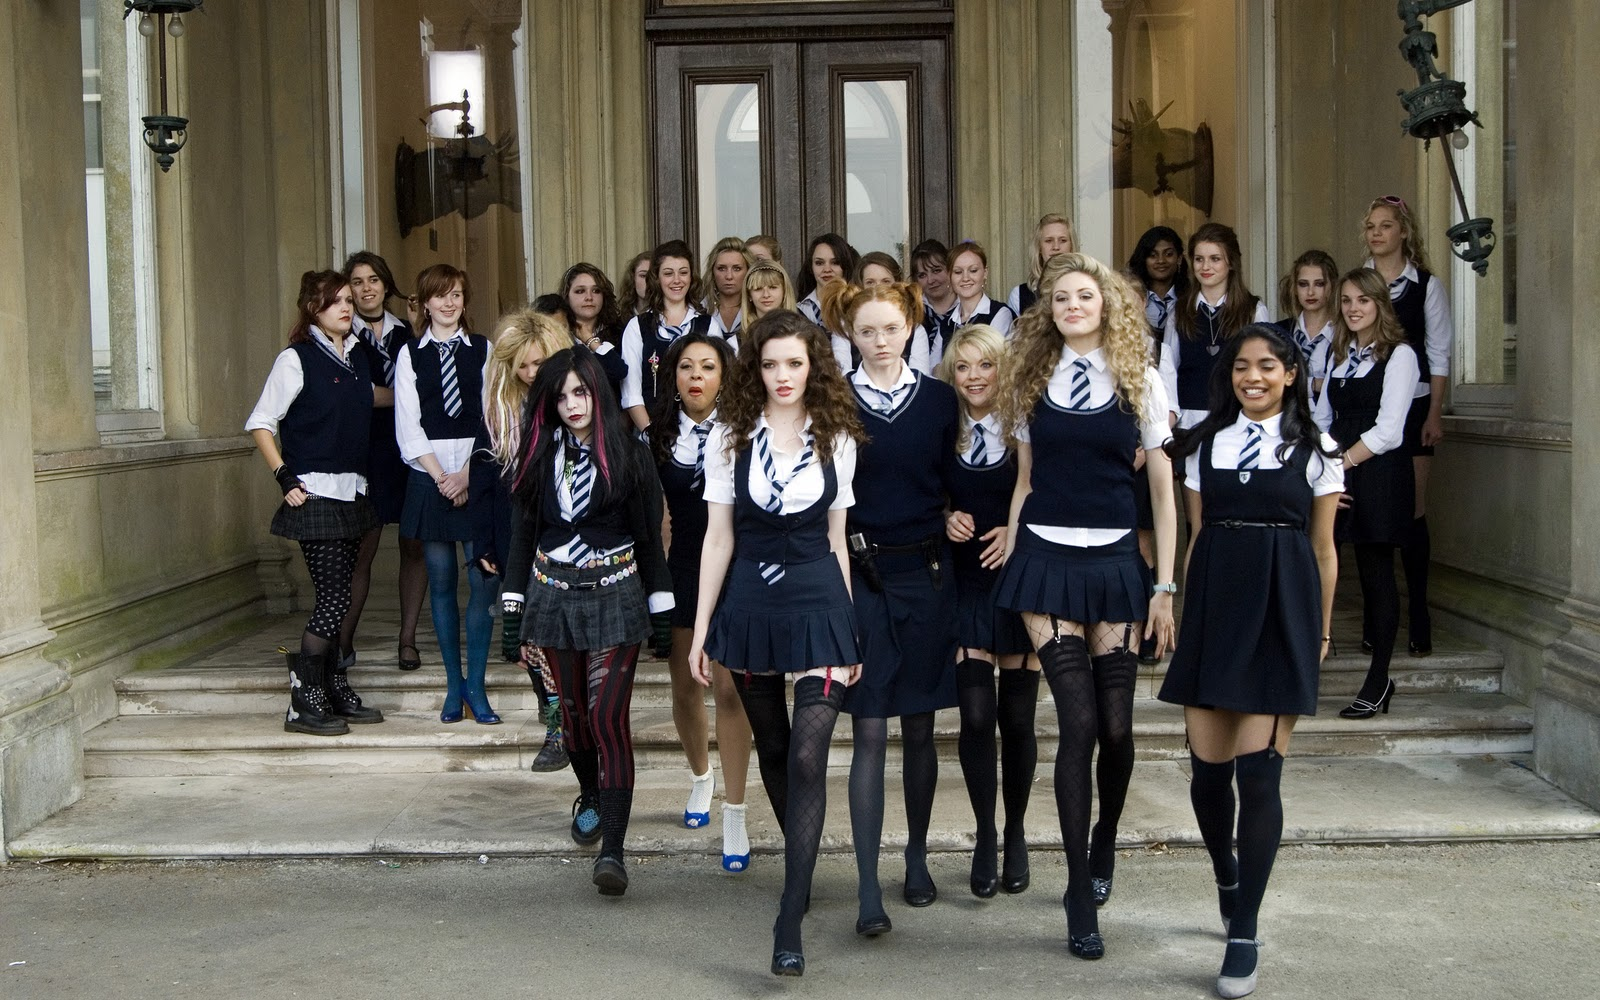 Schul teens the boarding school for teens 4